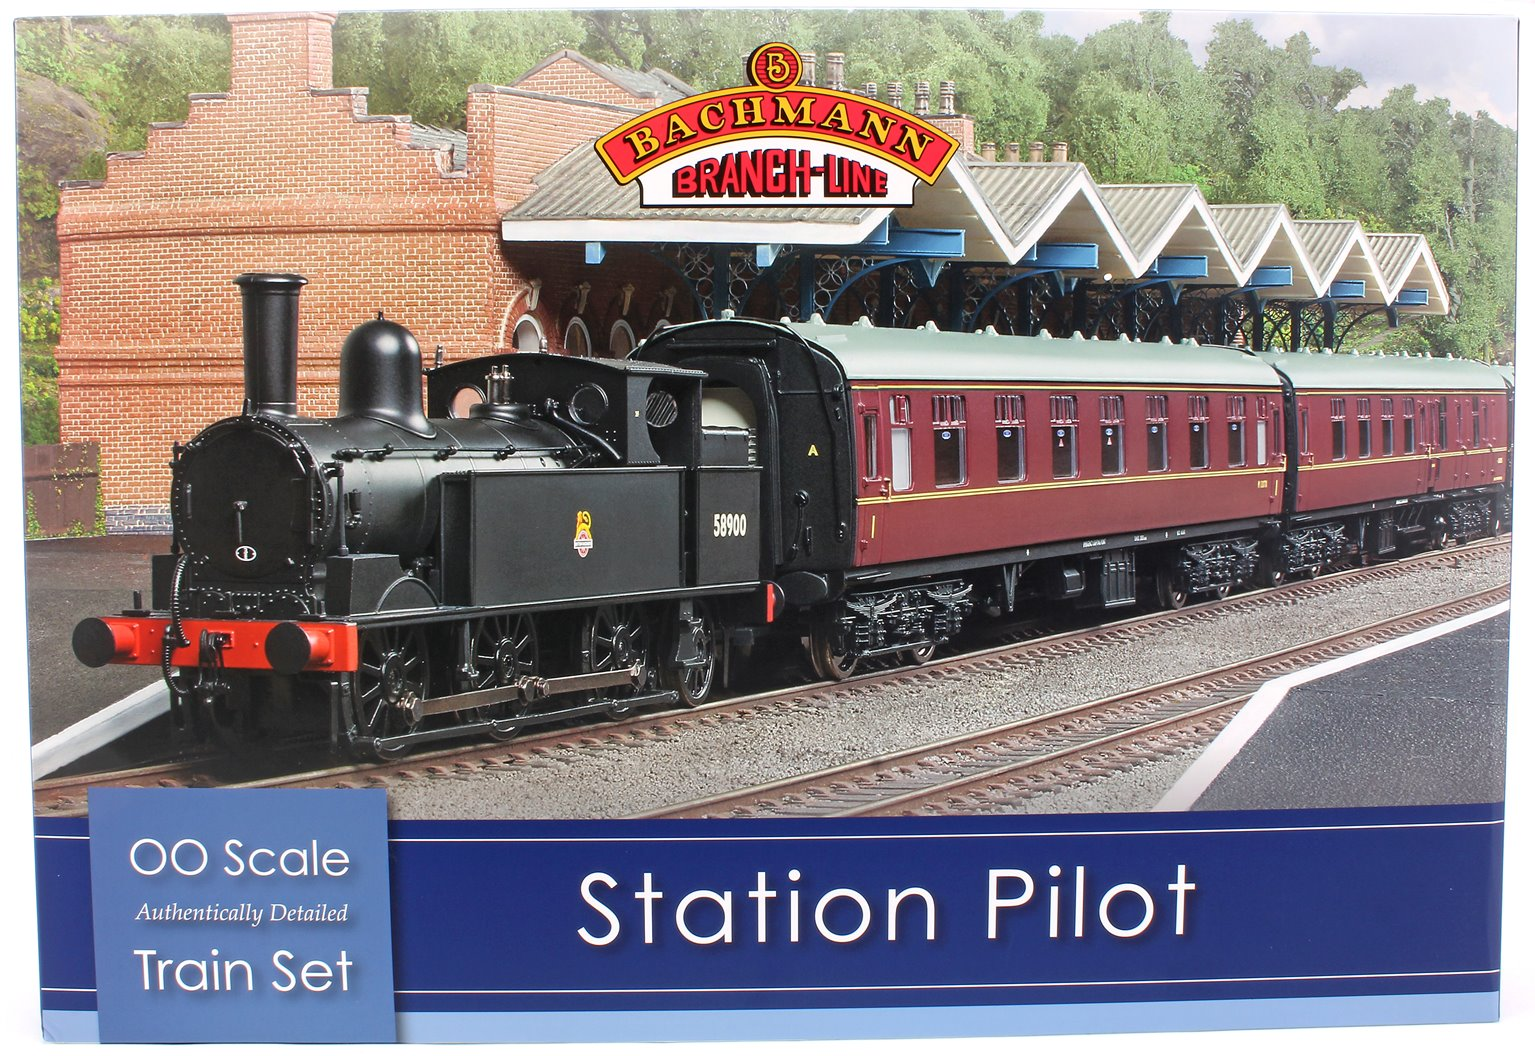 The Station Pilot Train Set